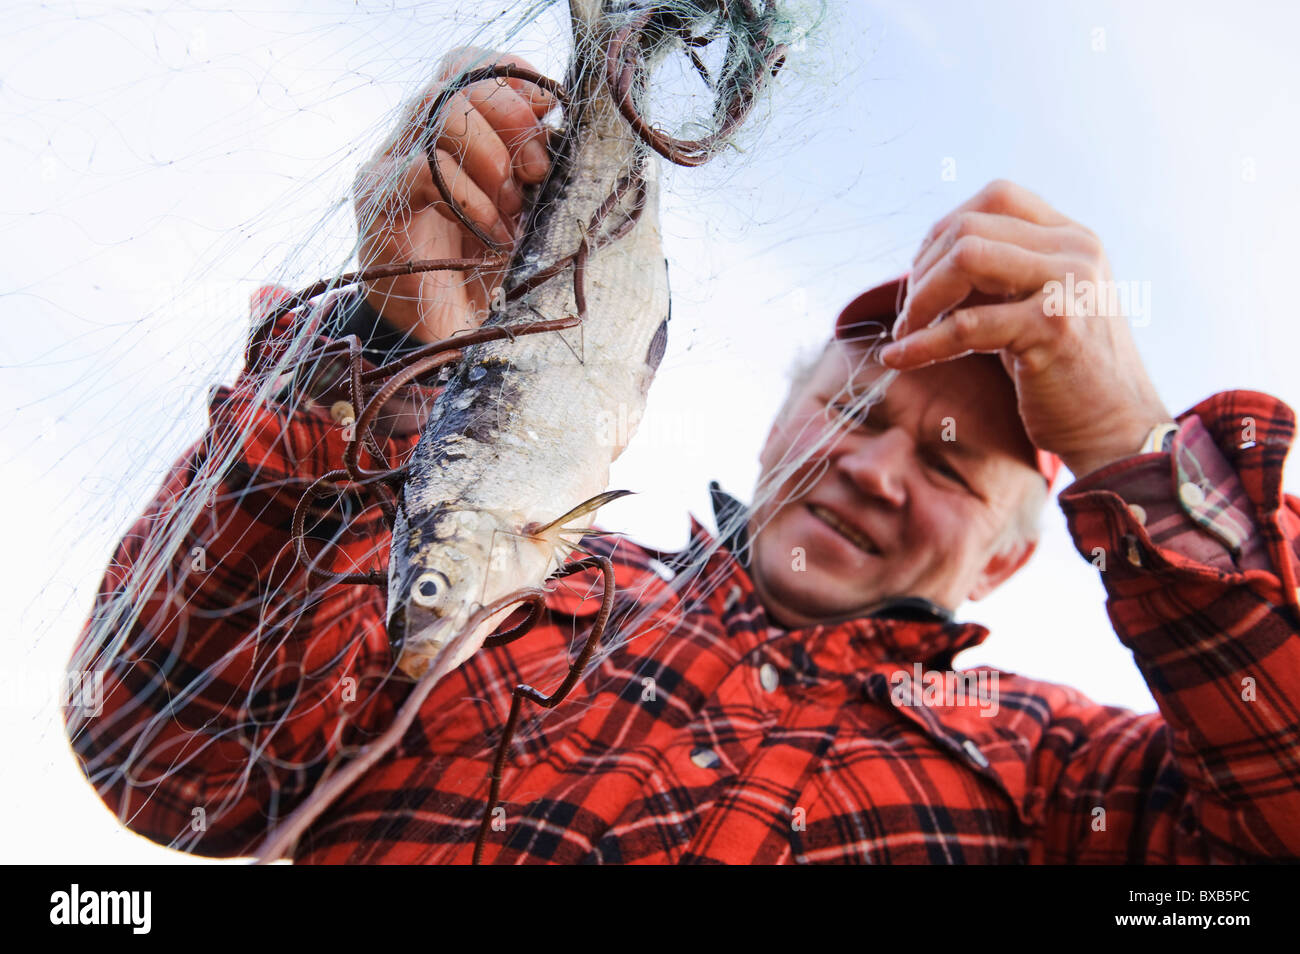 Fisherman taking out fish from fishing net - Stock Image